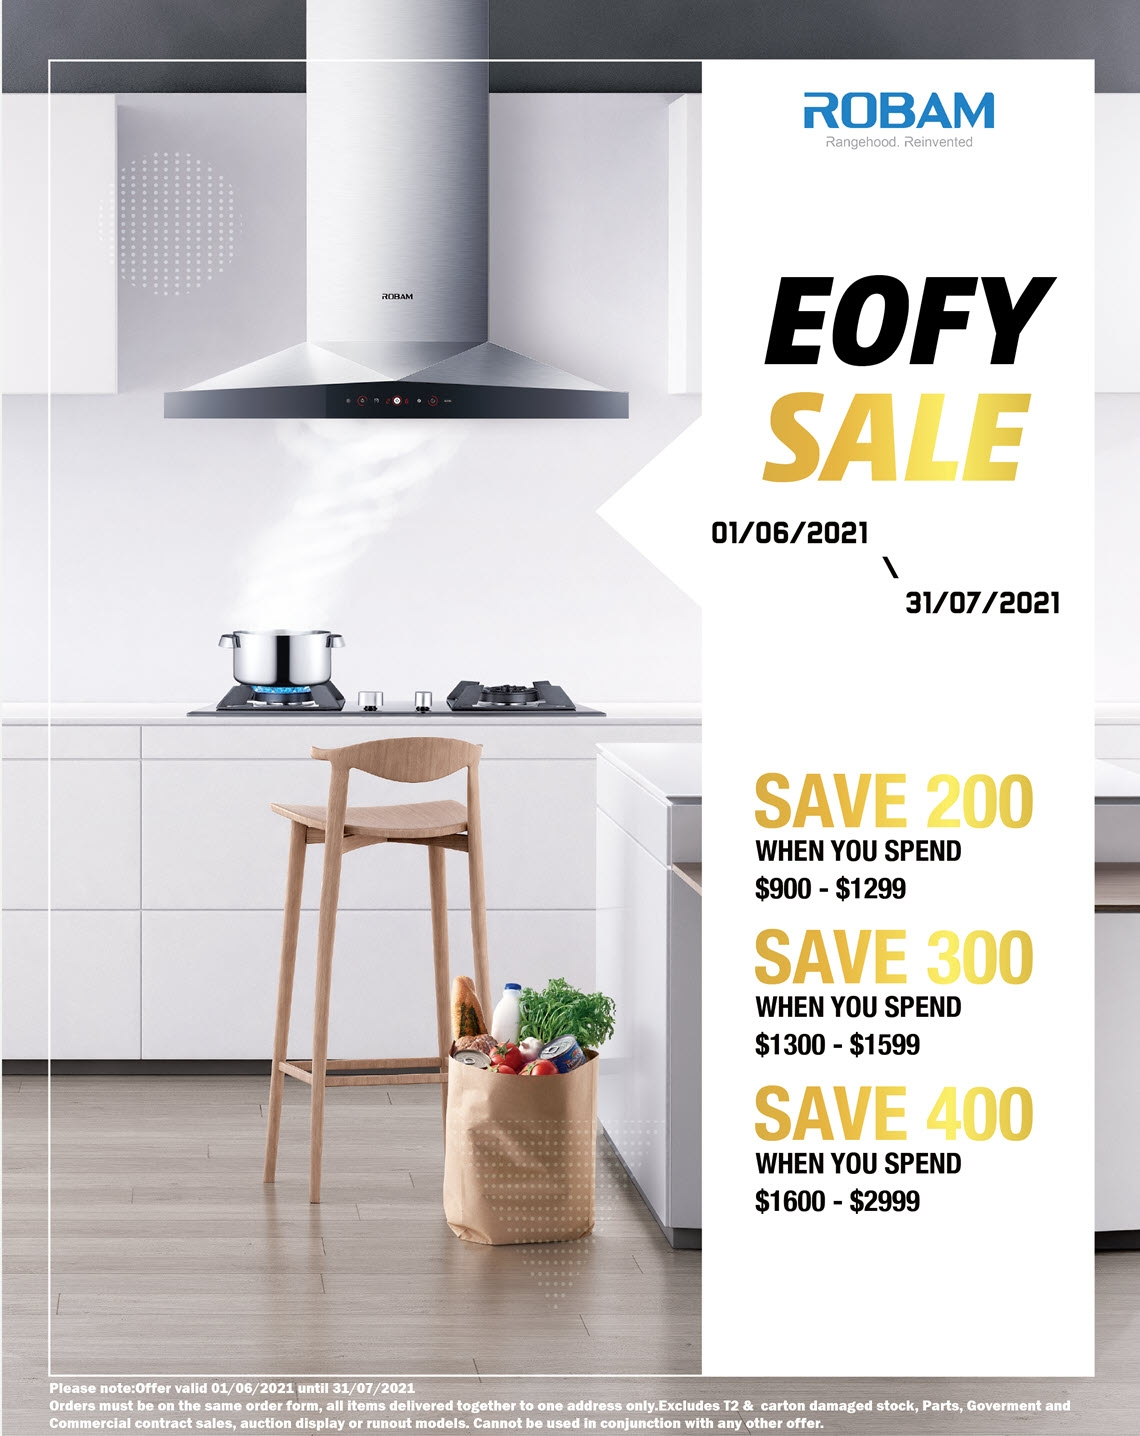 Robam EOFY Sale 2021 Promotion